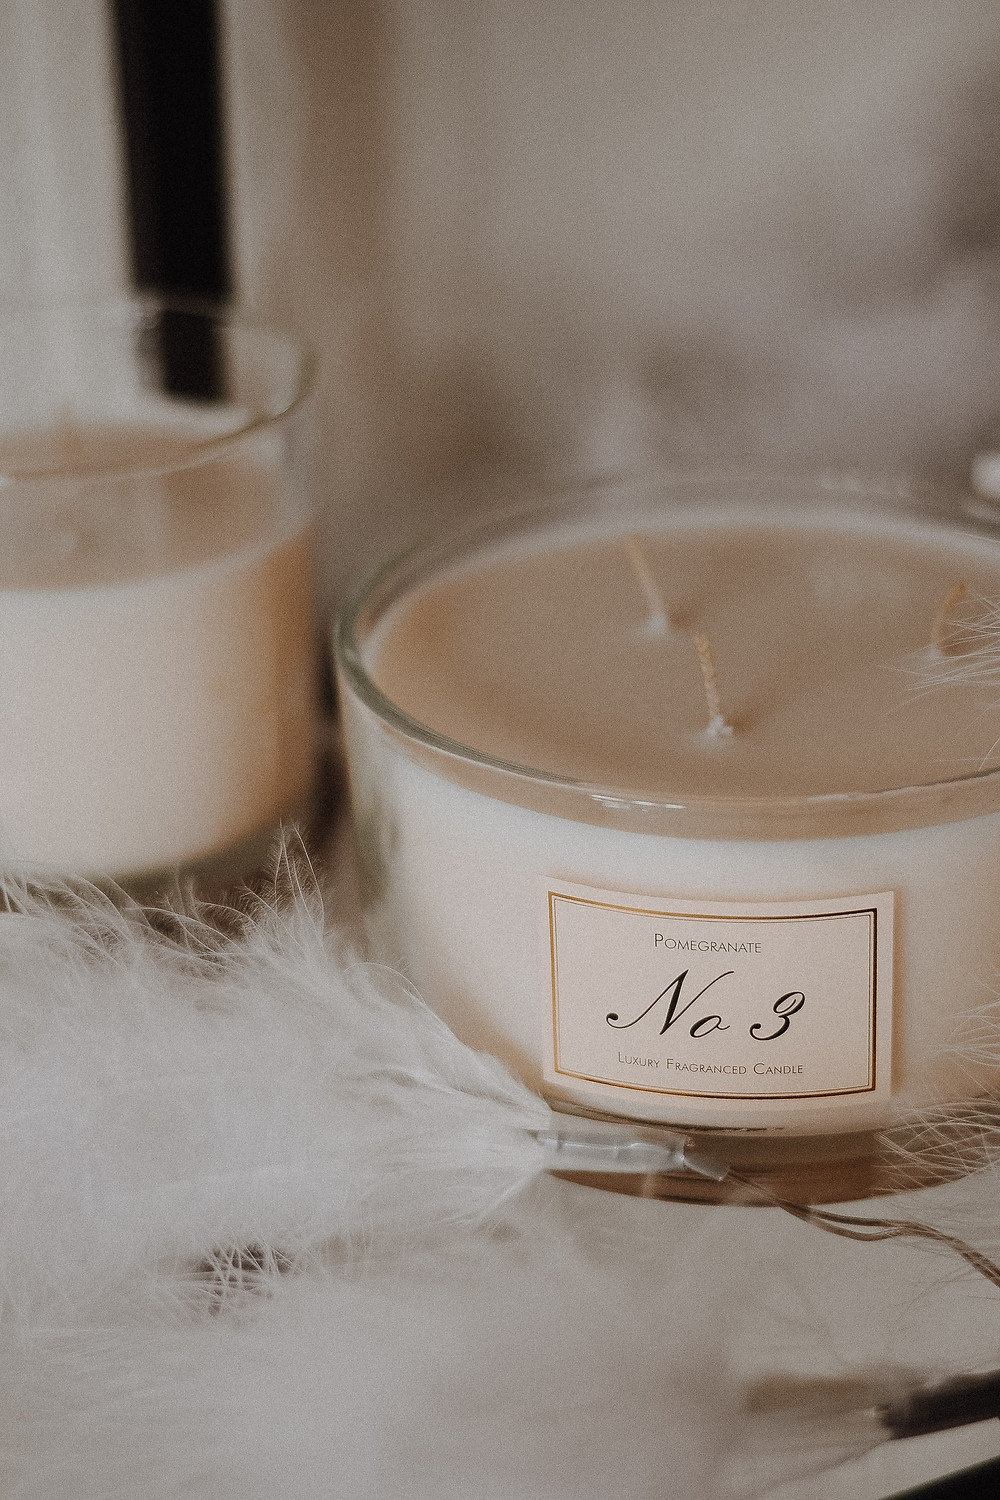 Luxury fragranced candle by HOFER